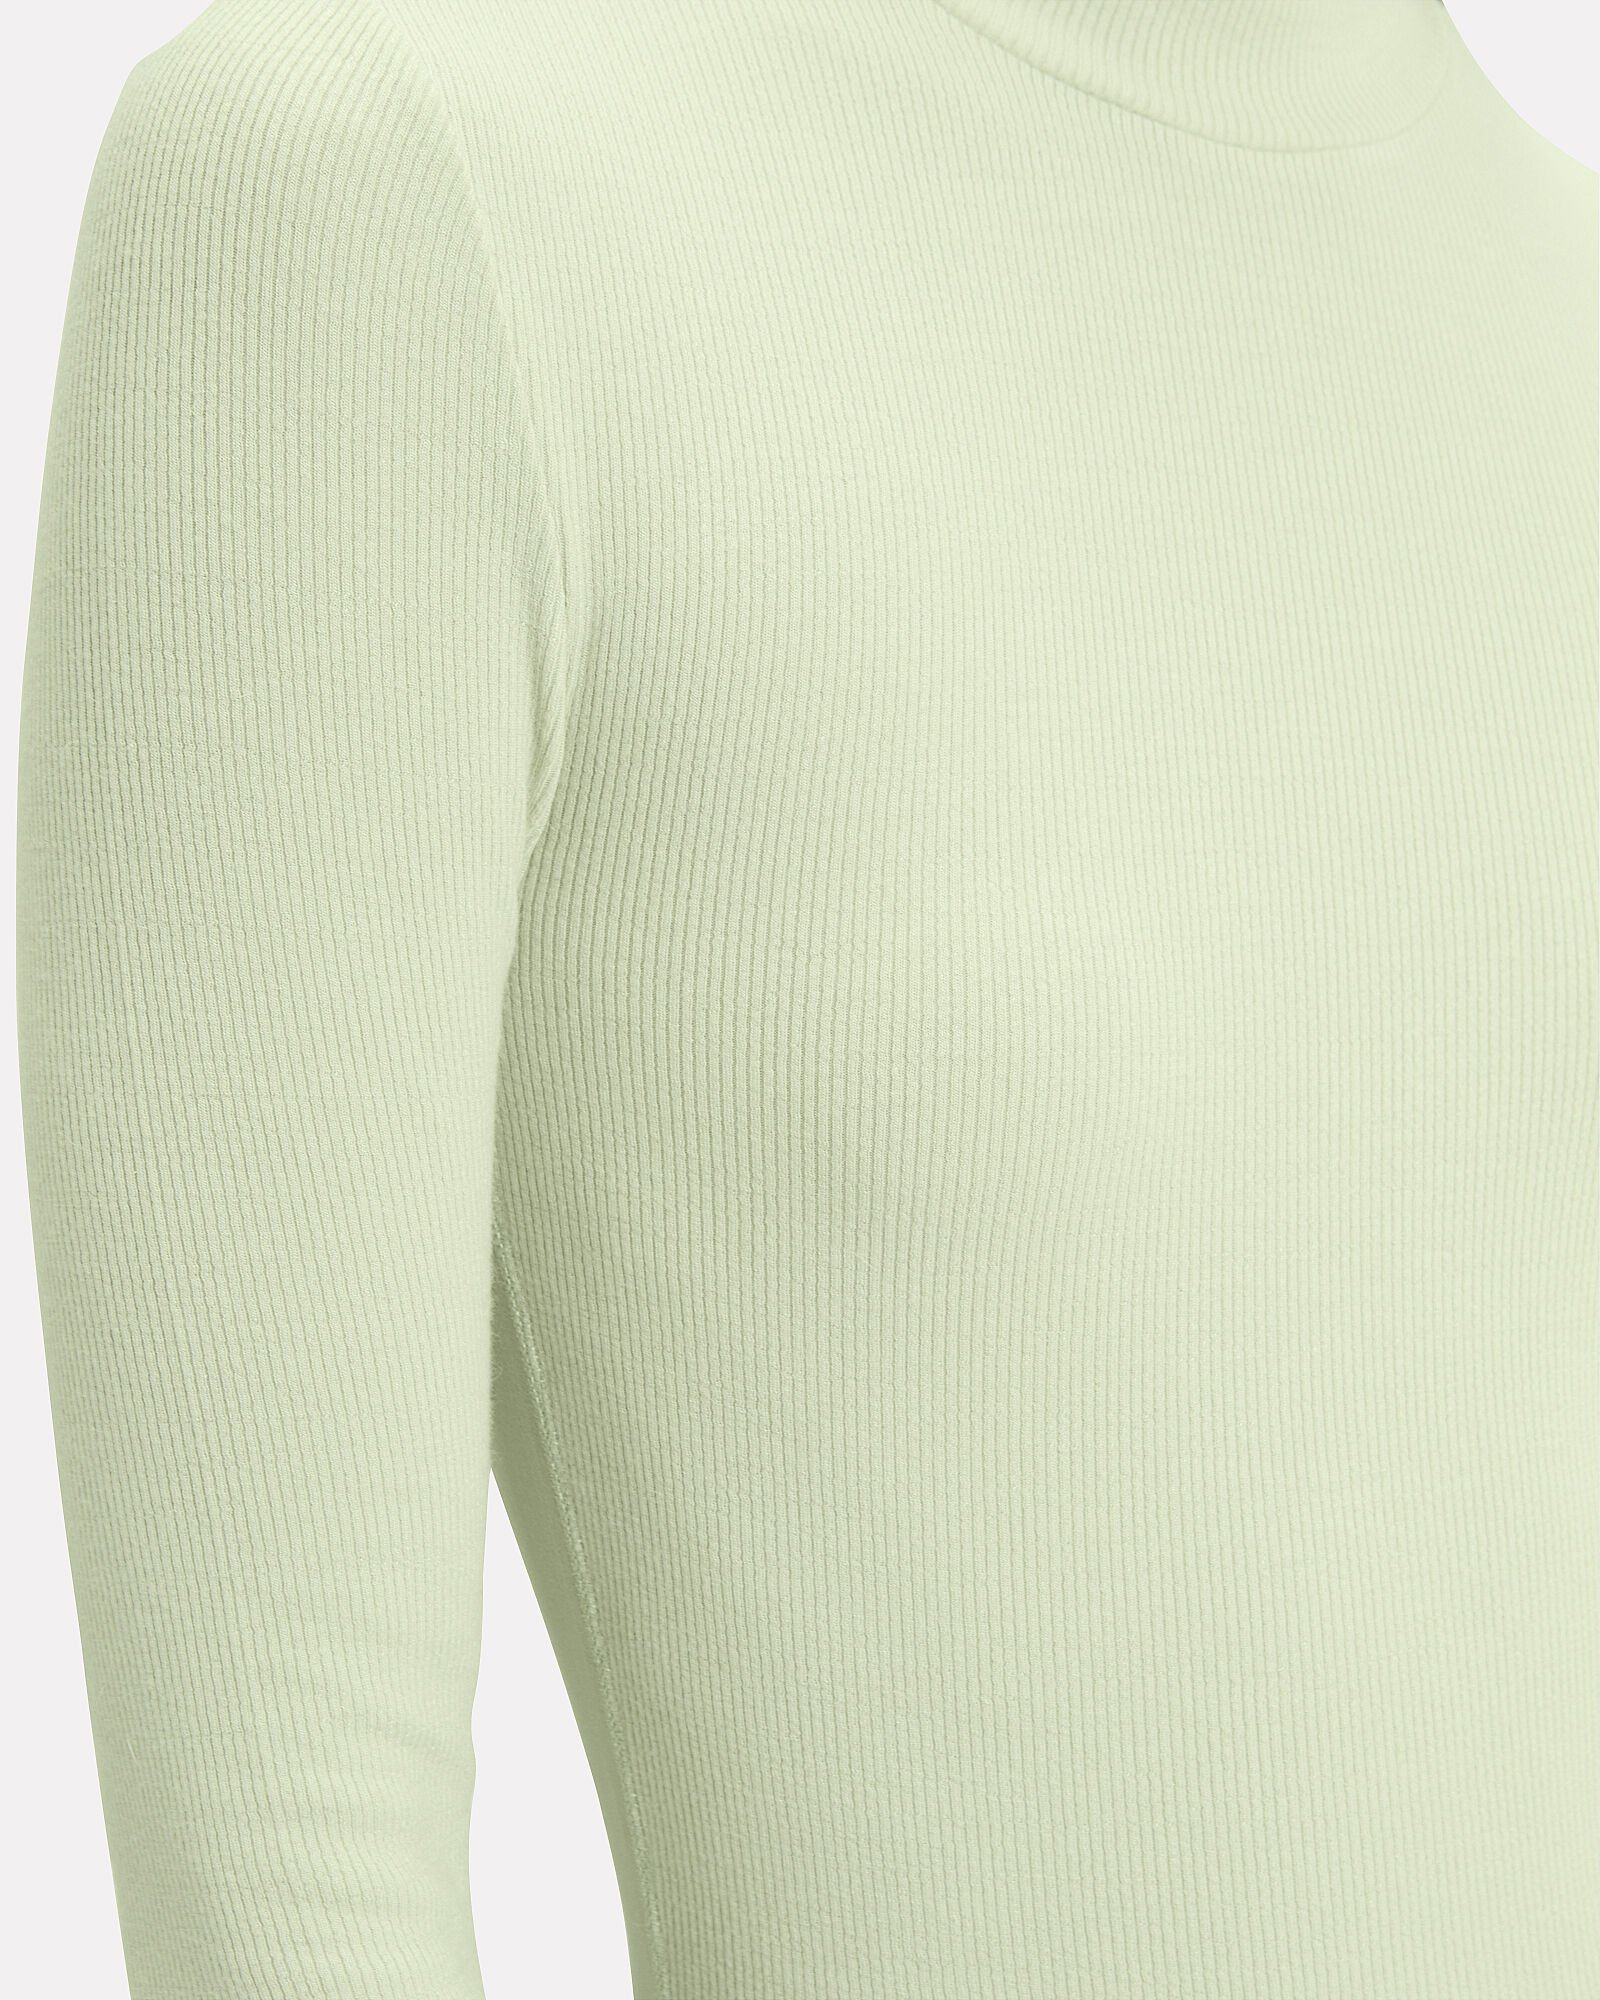 Knit Turtleneck Top, GREEN-LT, hi-res